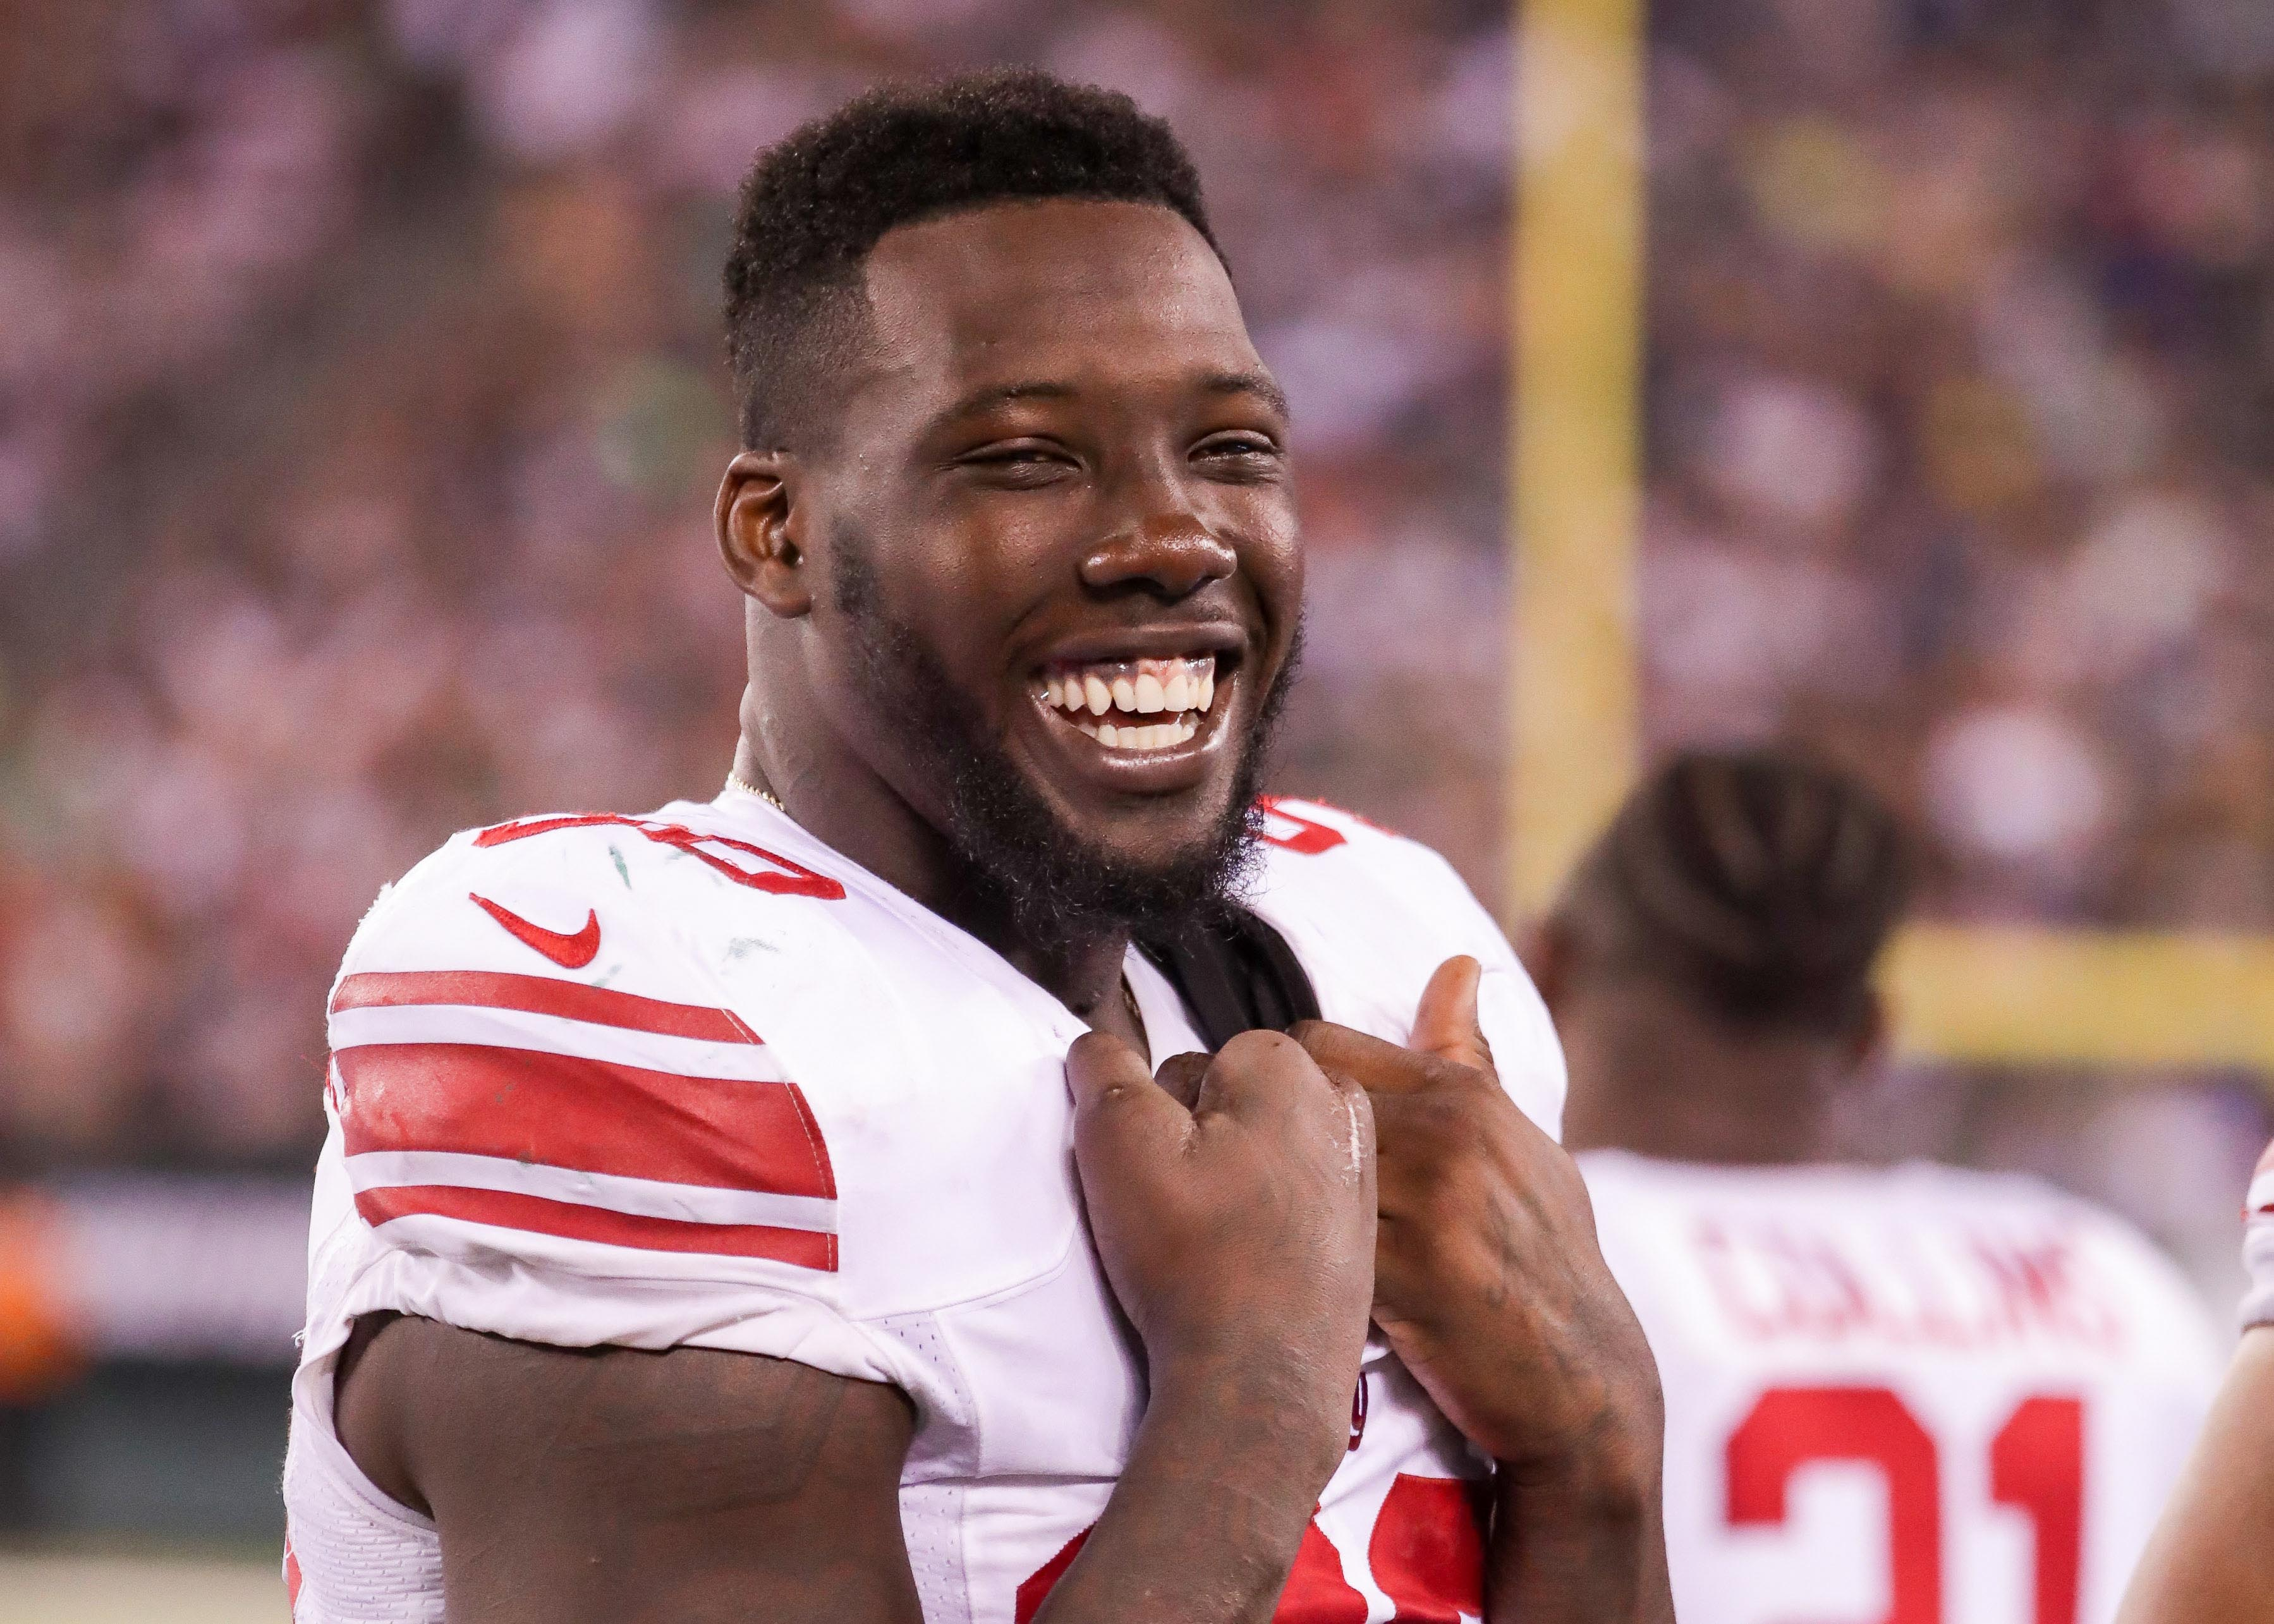 New York Giants: Jason Pierre-Paul Signing Excellent For Defense, Awful For Offense